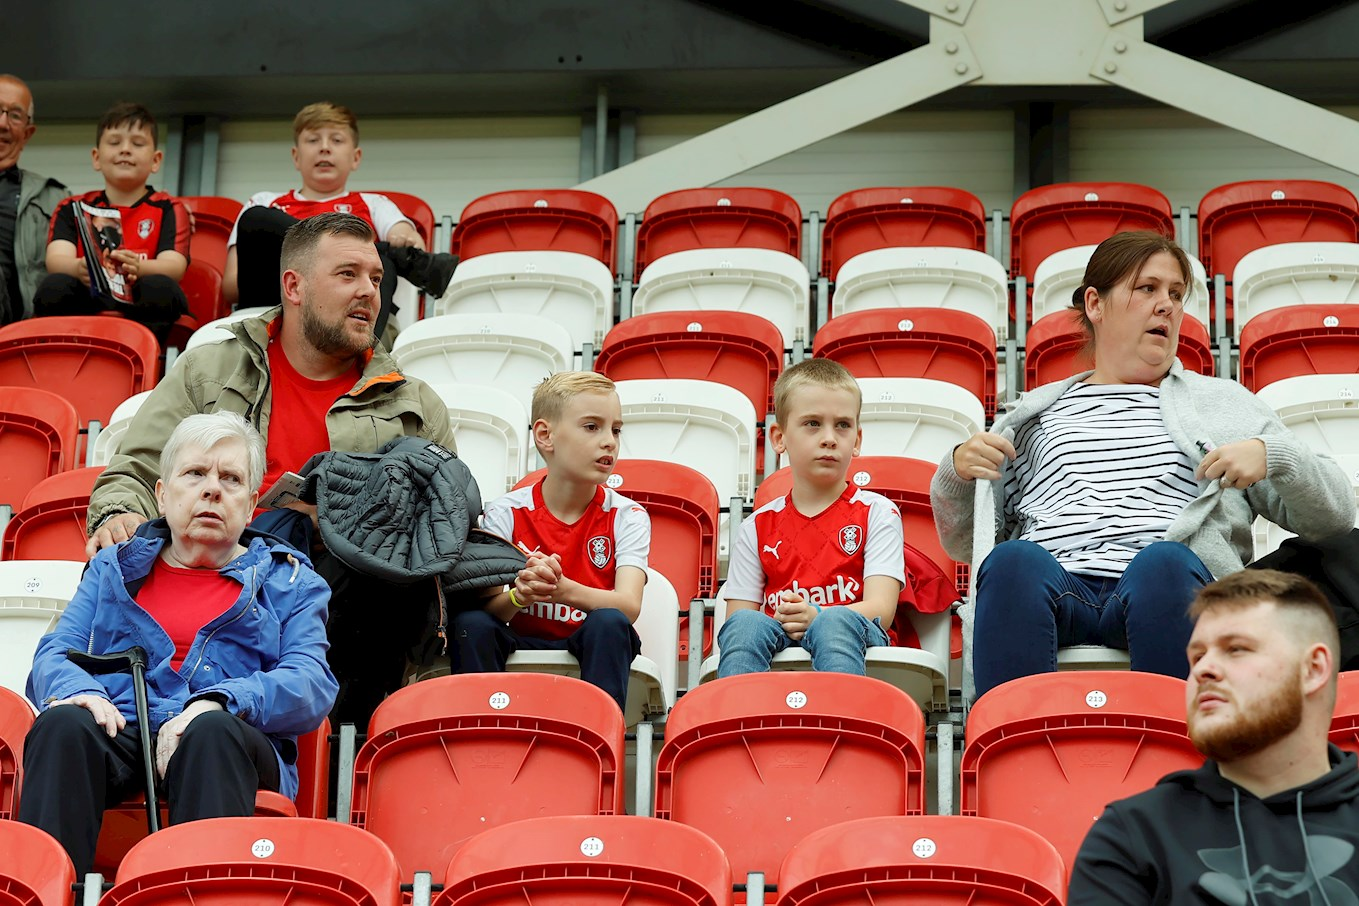 RUFC v Plymouth Argyle - 043 - Key Workers.jpg